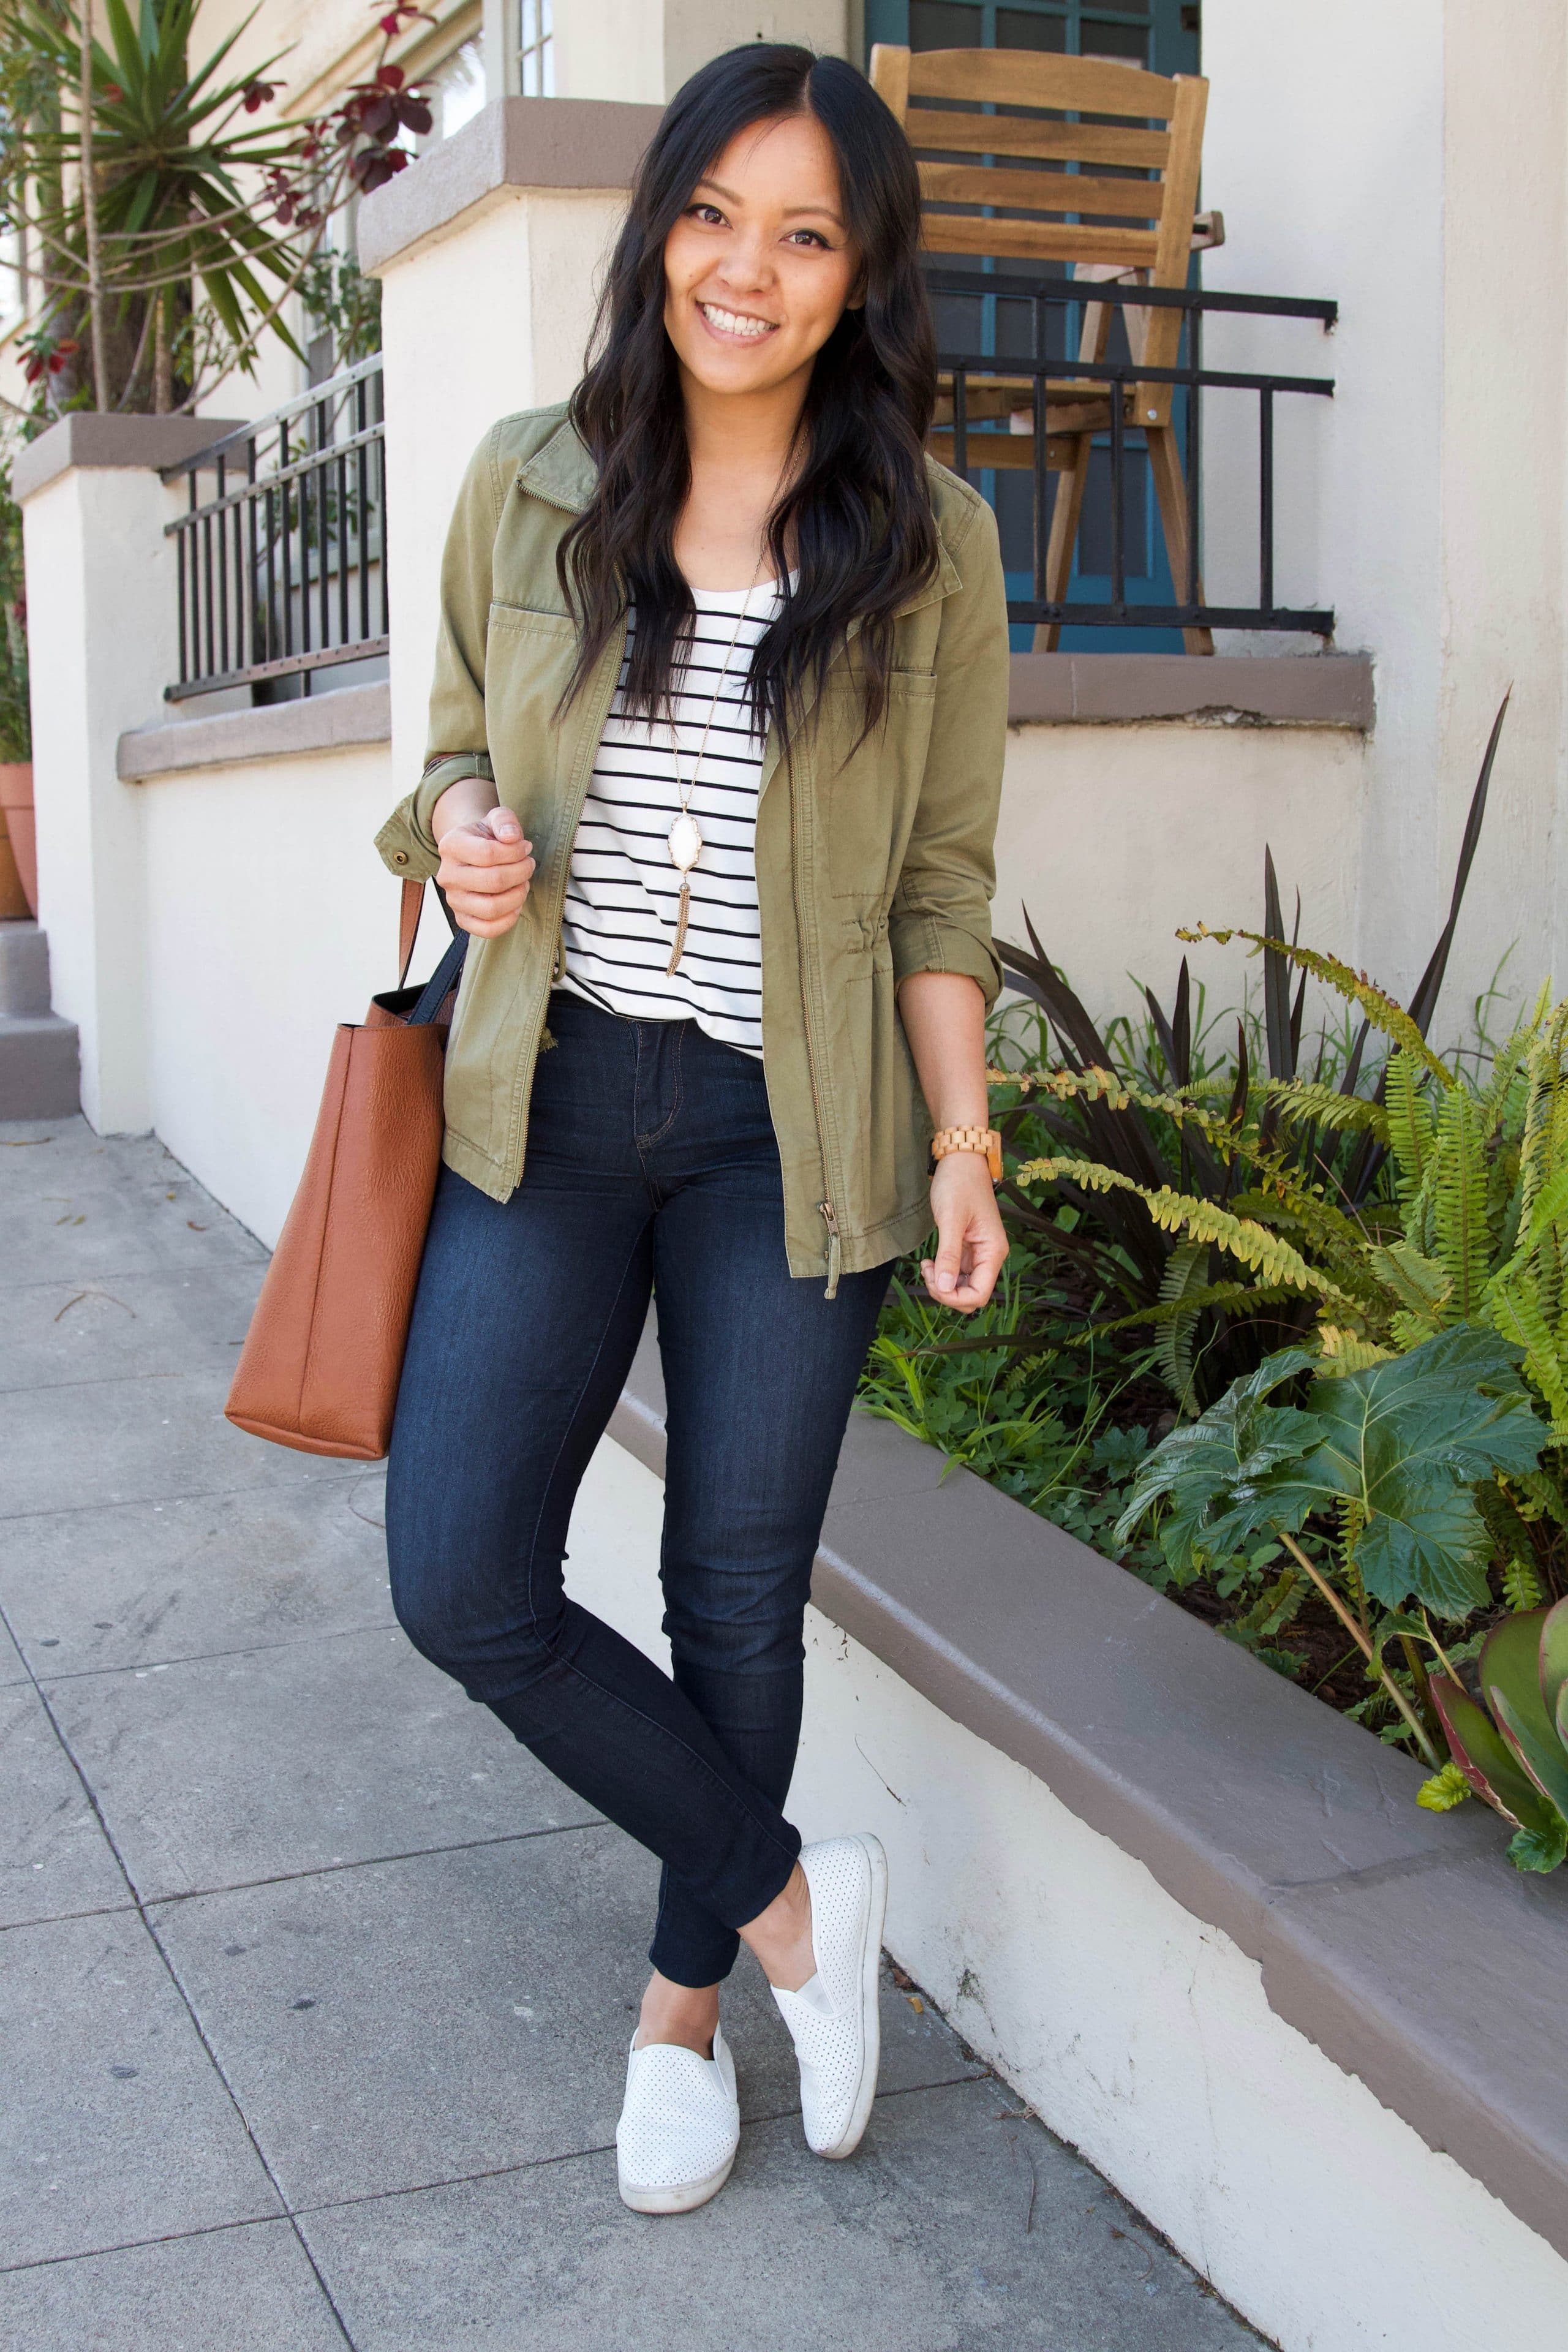 olive utility jacket + striped tee + jean jacket + white sneakers + brown tote